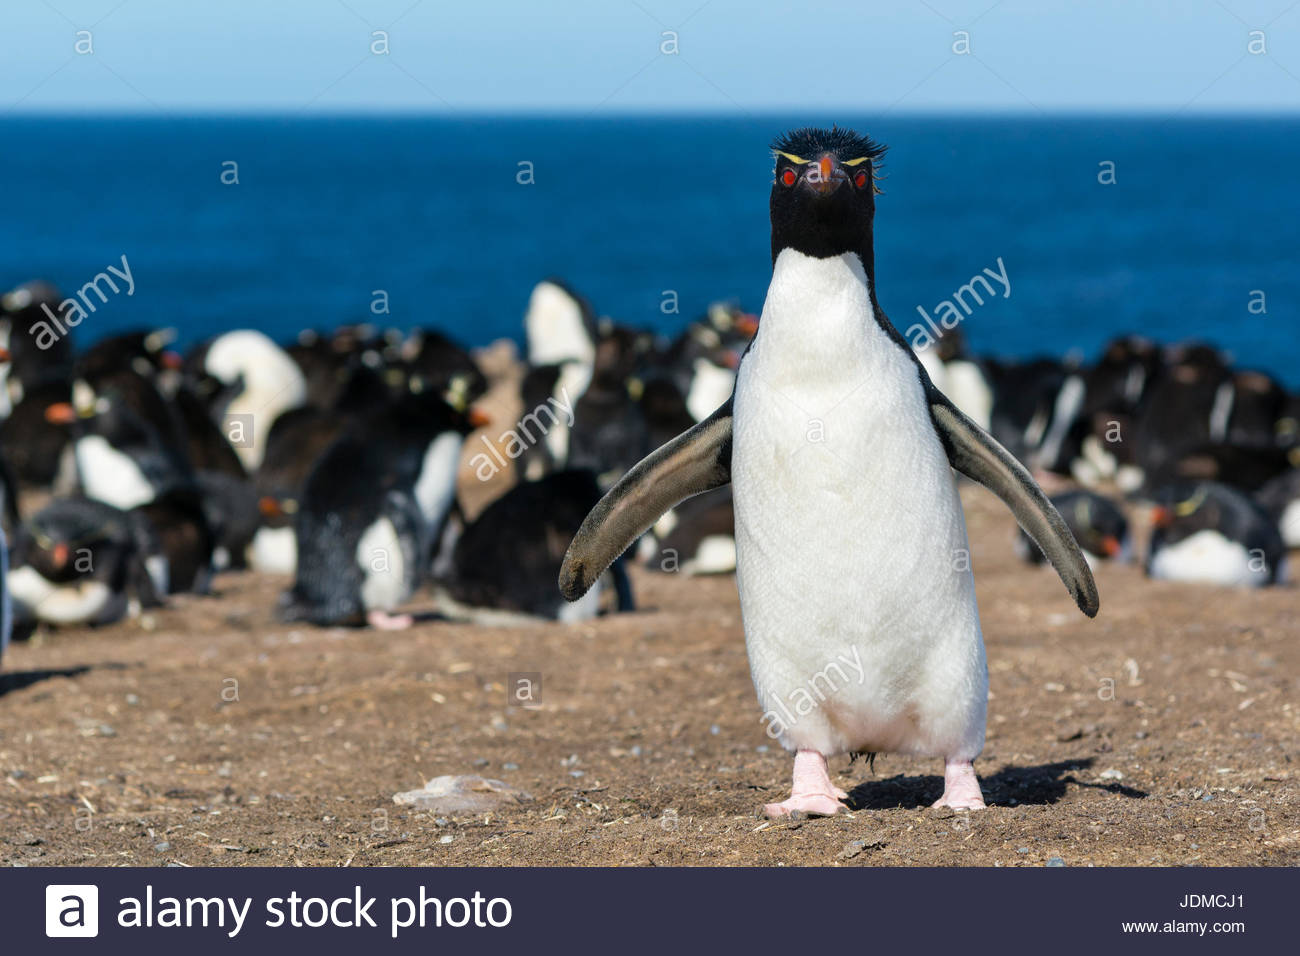 A rockhopper penguin, Eudyptes chrysocome, looking at the camera. - Stock Image